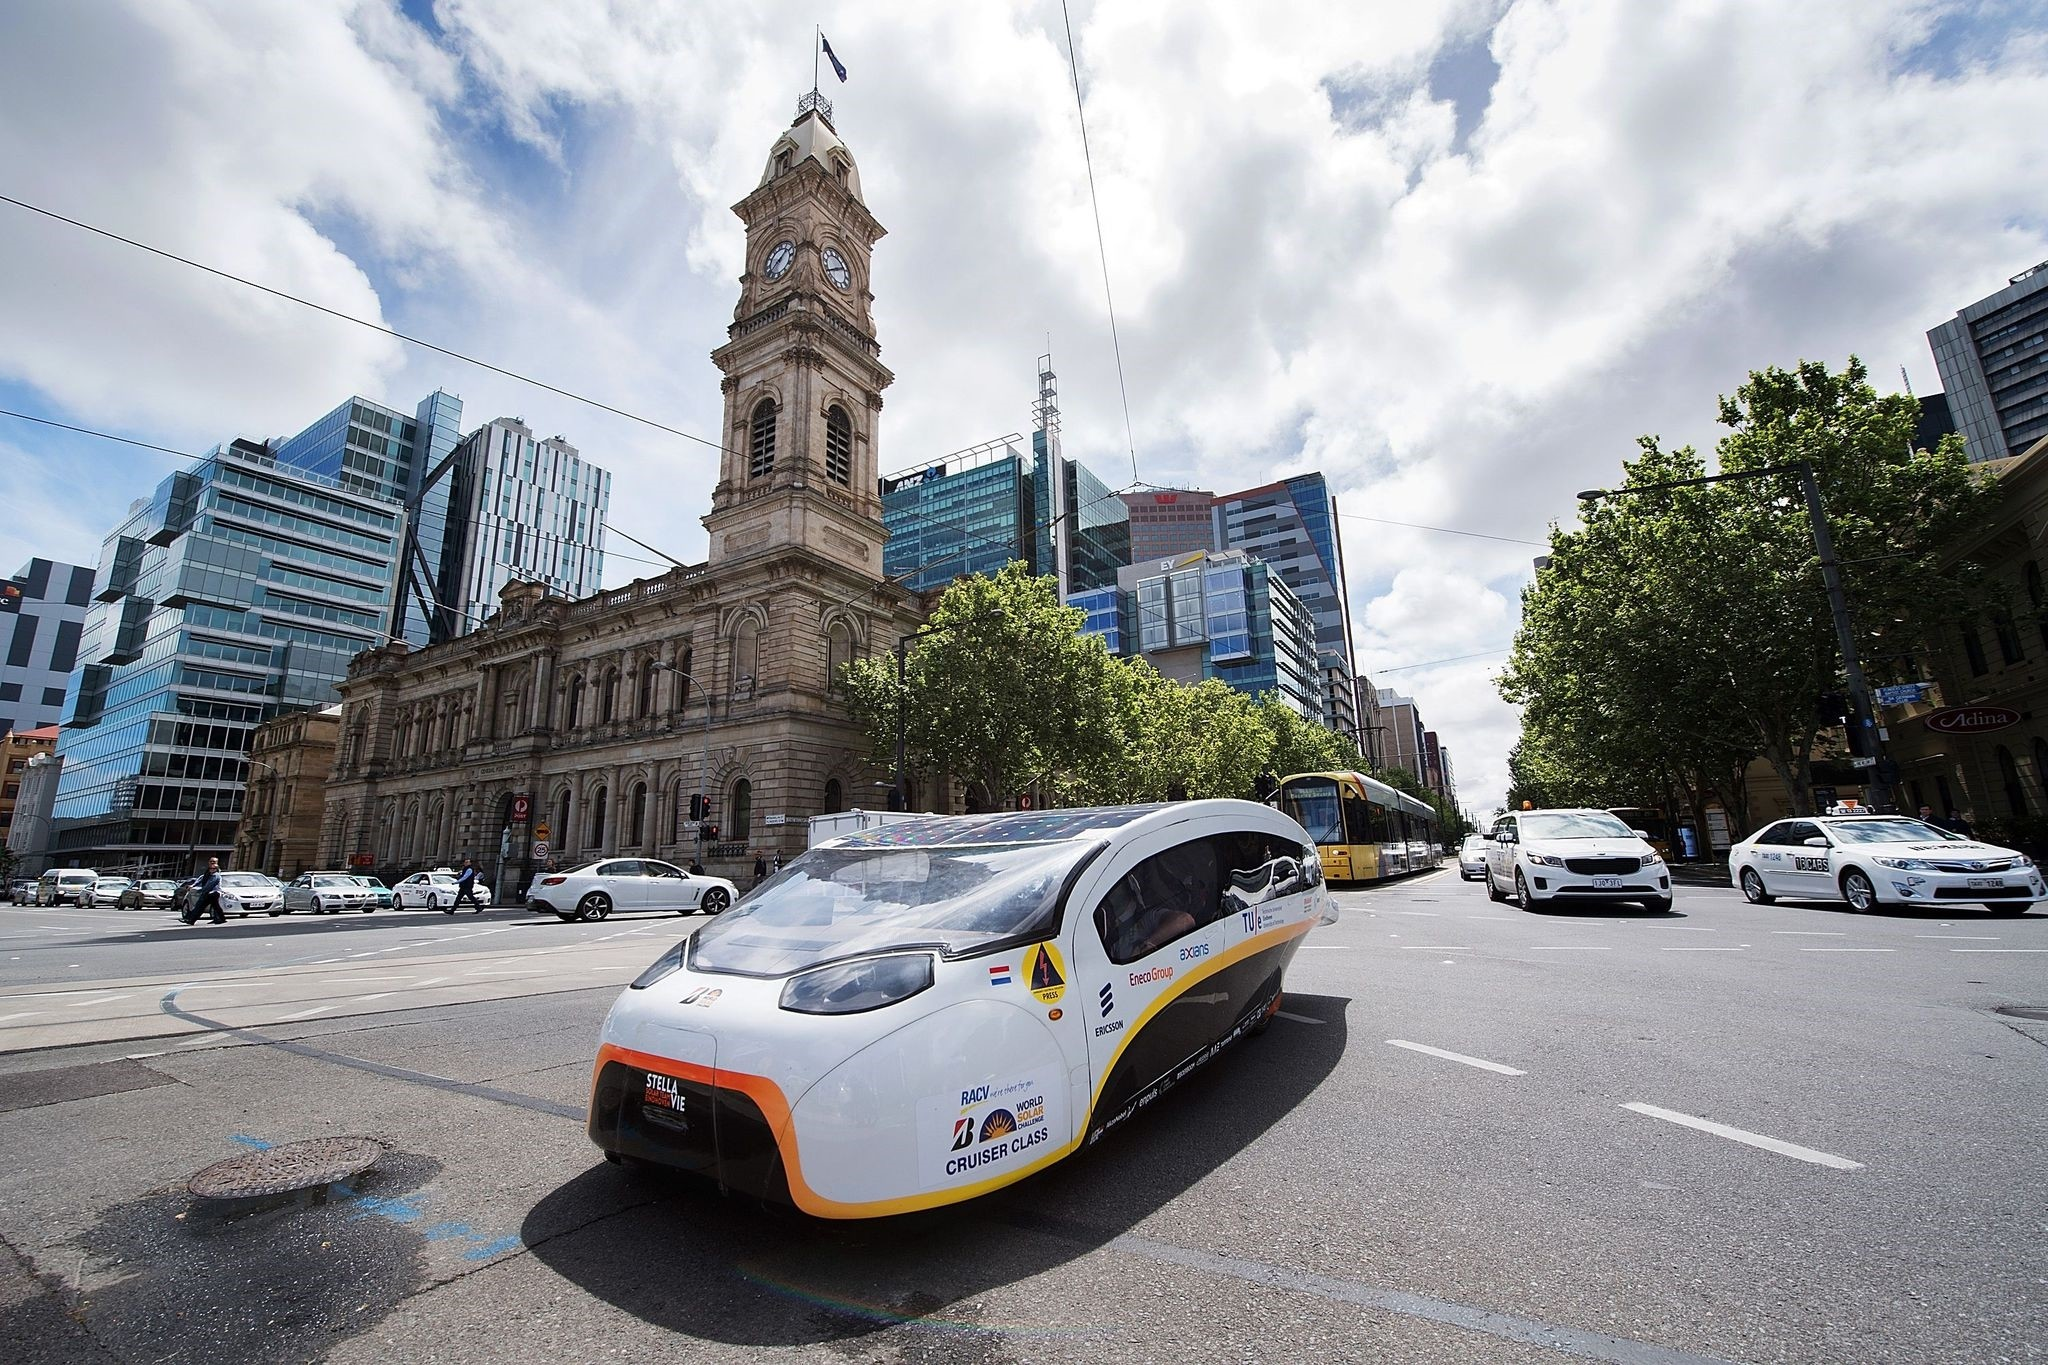 Solar Team Eindhoven vehicle u2018Stella Vieu2019 from the Netherlands passes the Adelaide Town Hall to the finish line in Adelaide.